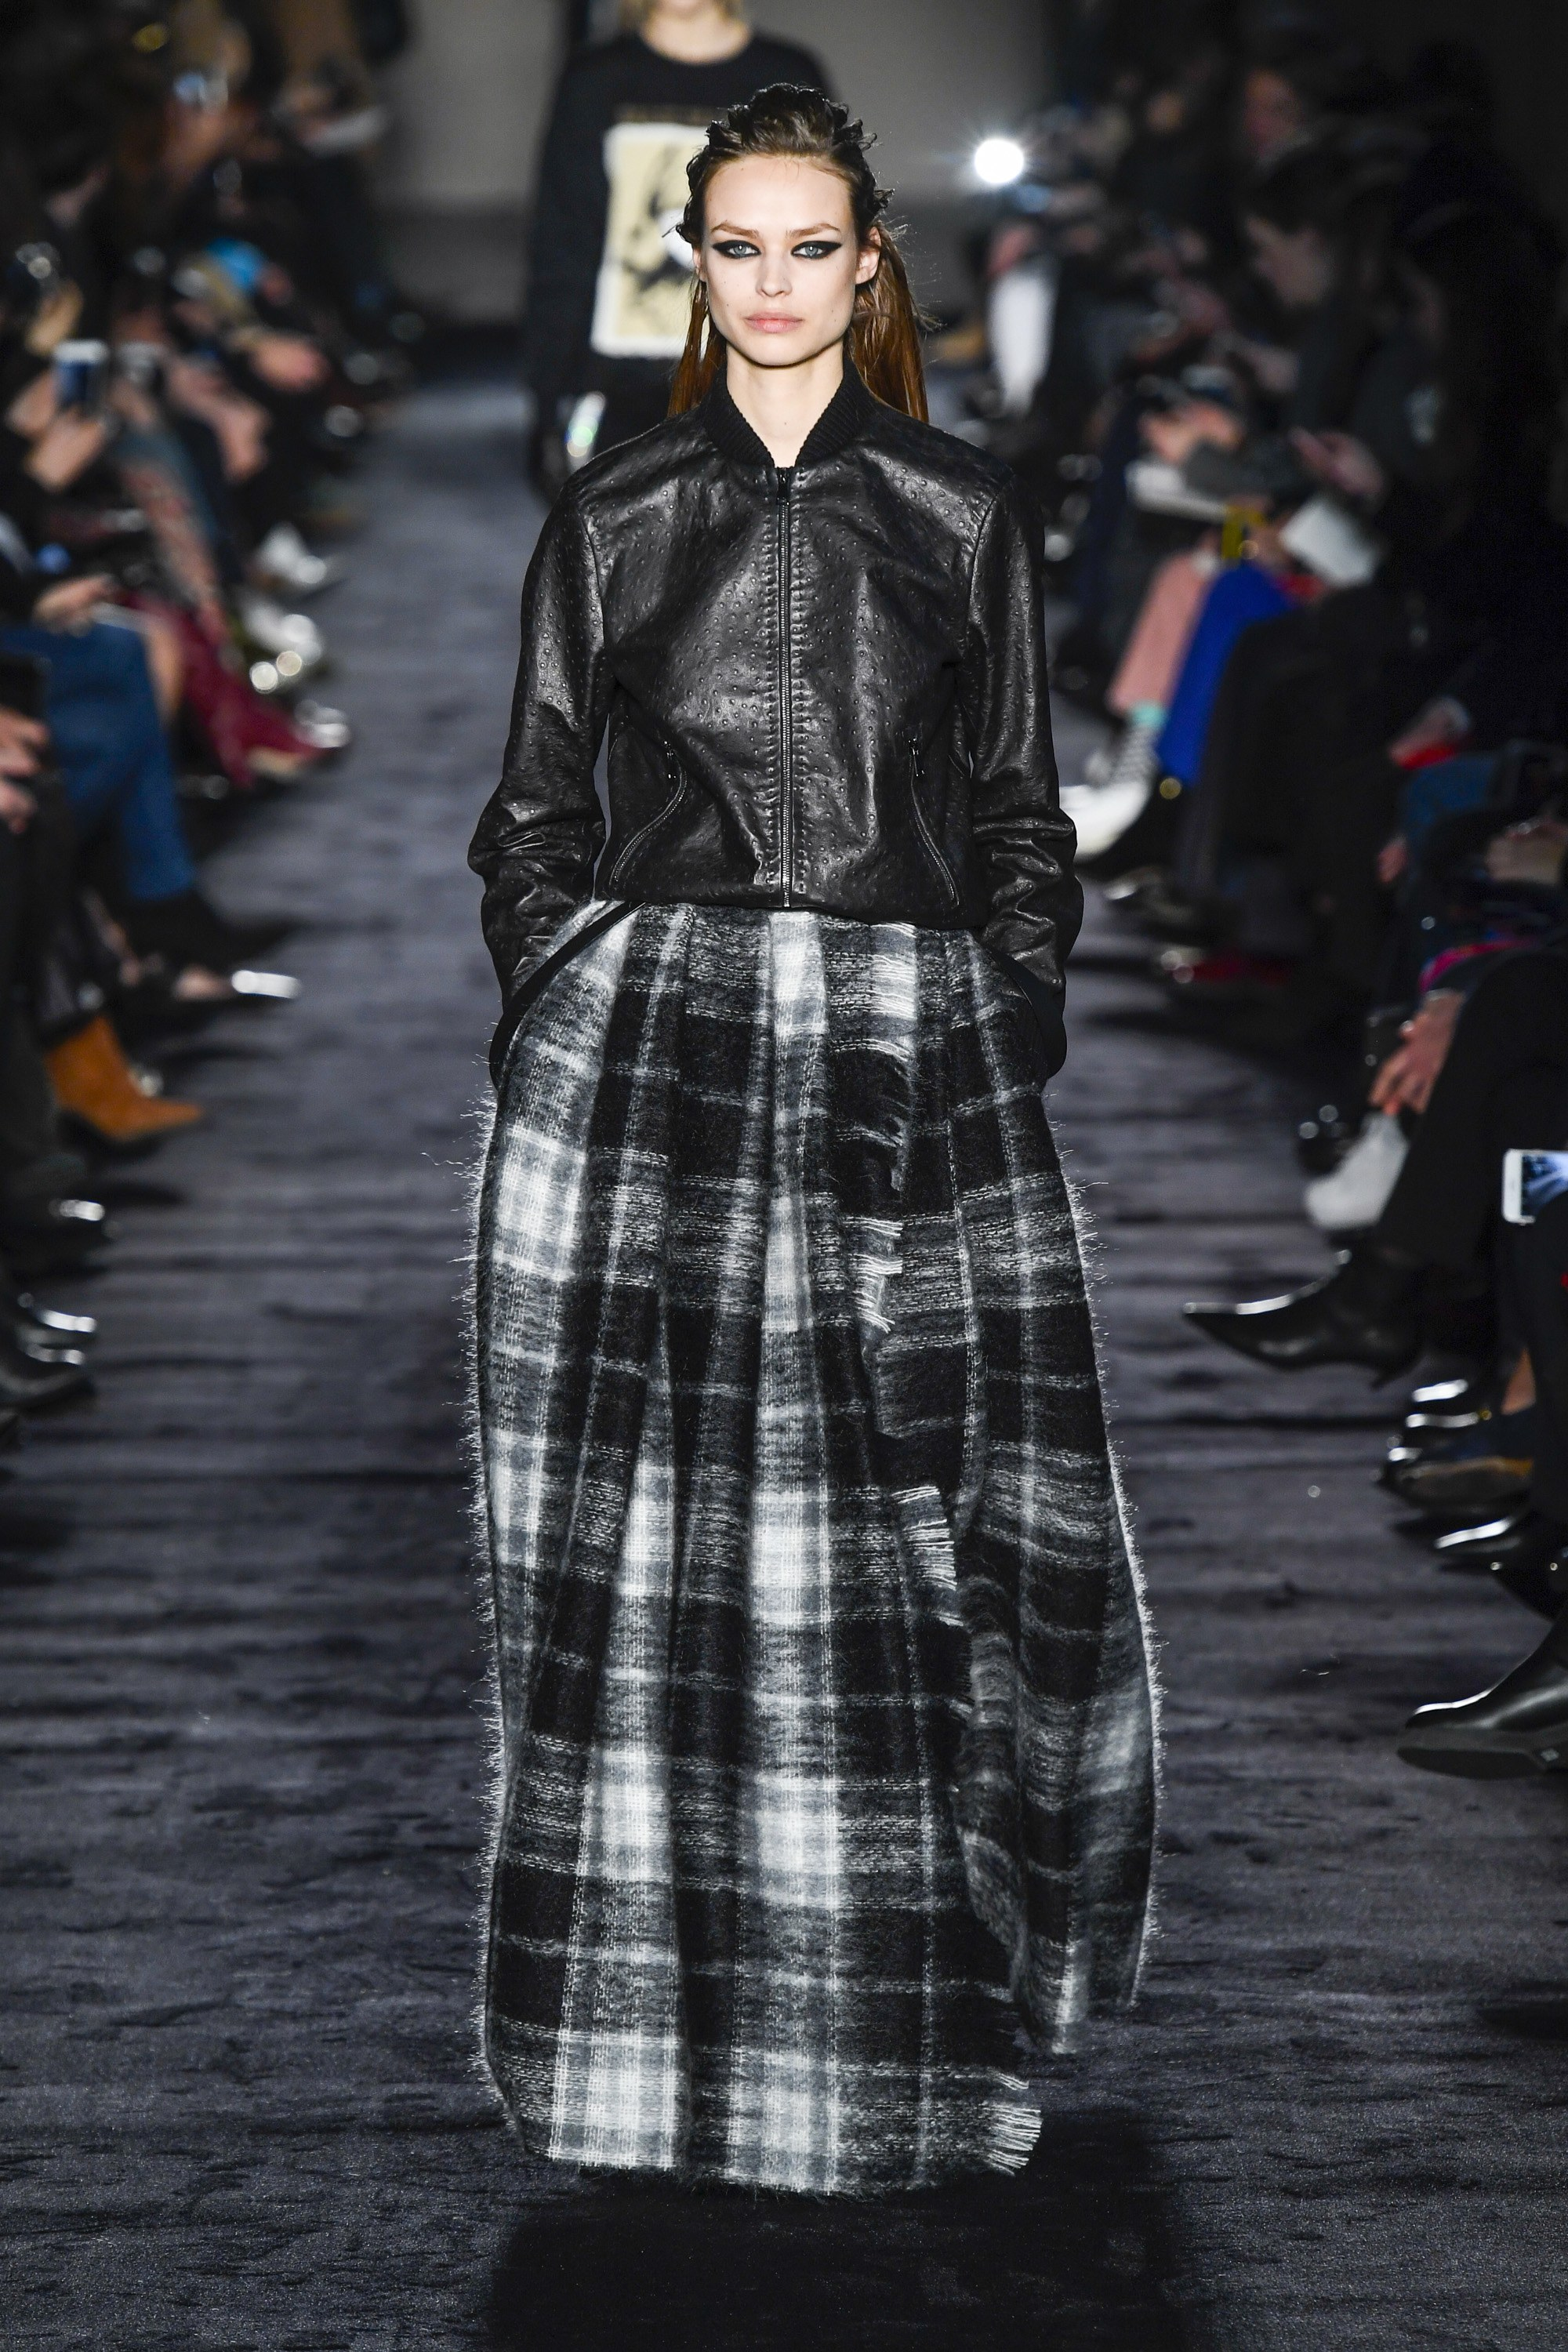 Max Mara Ready-to-Wear Fall 2018  - I think I want one of these tartan print maxi skirts - it's such a cool look paired with the leather bomber jacket